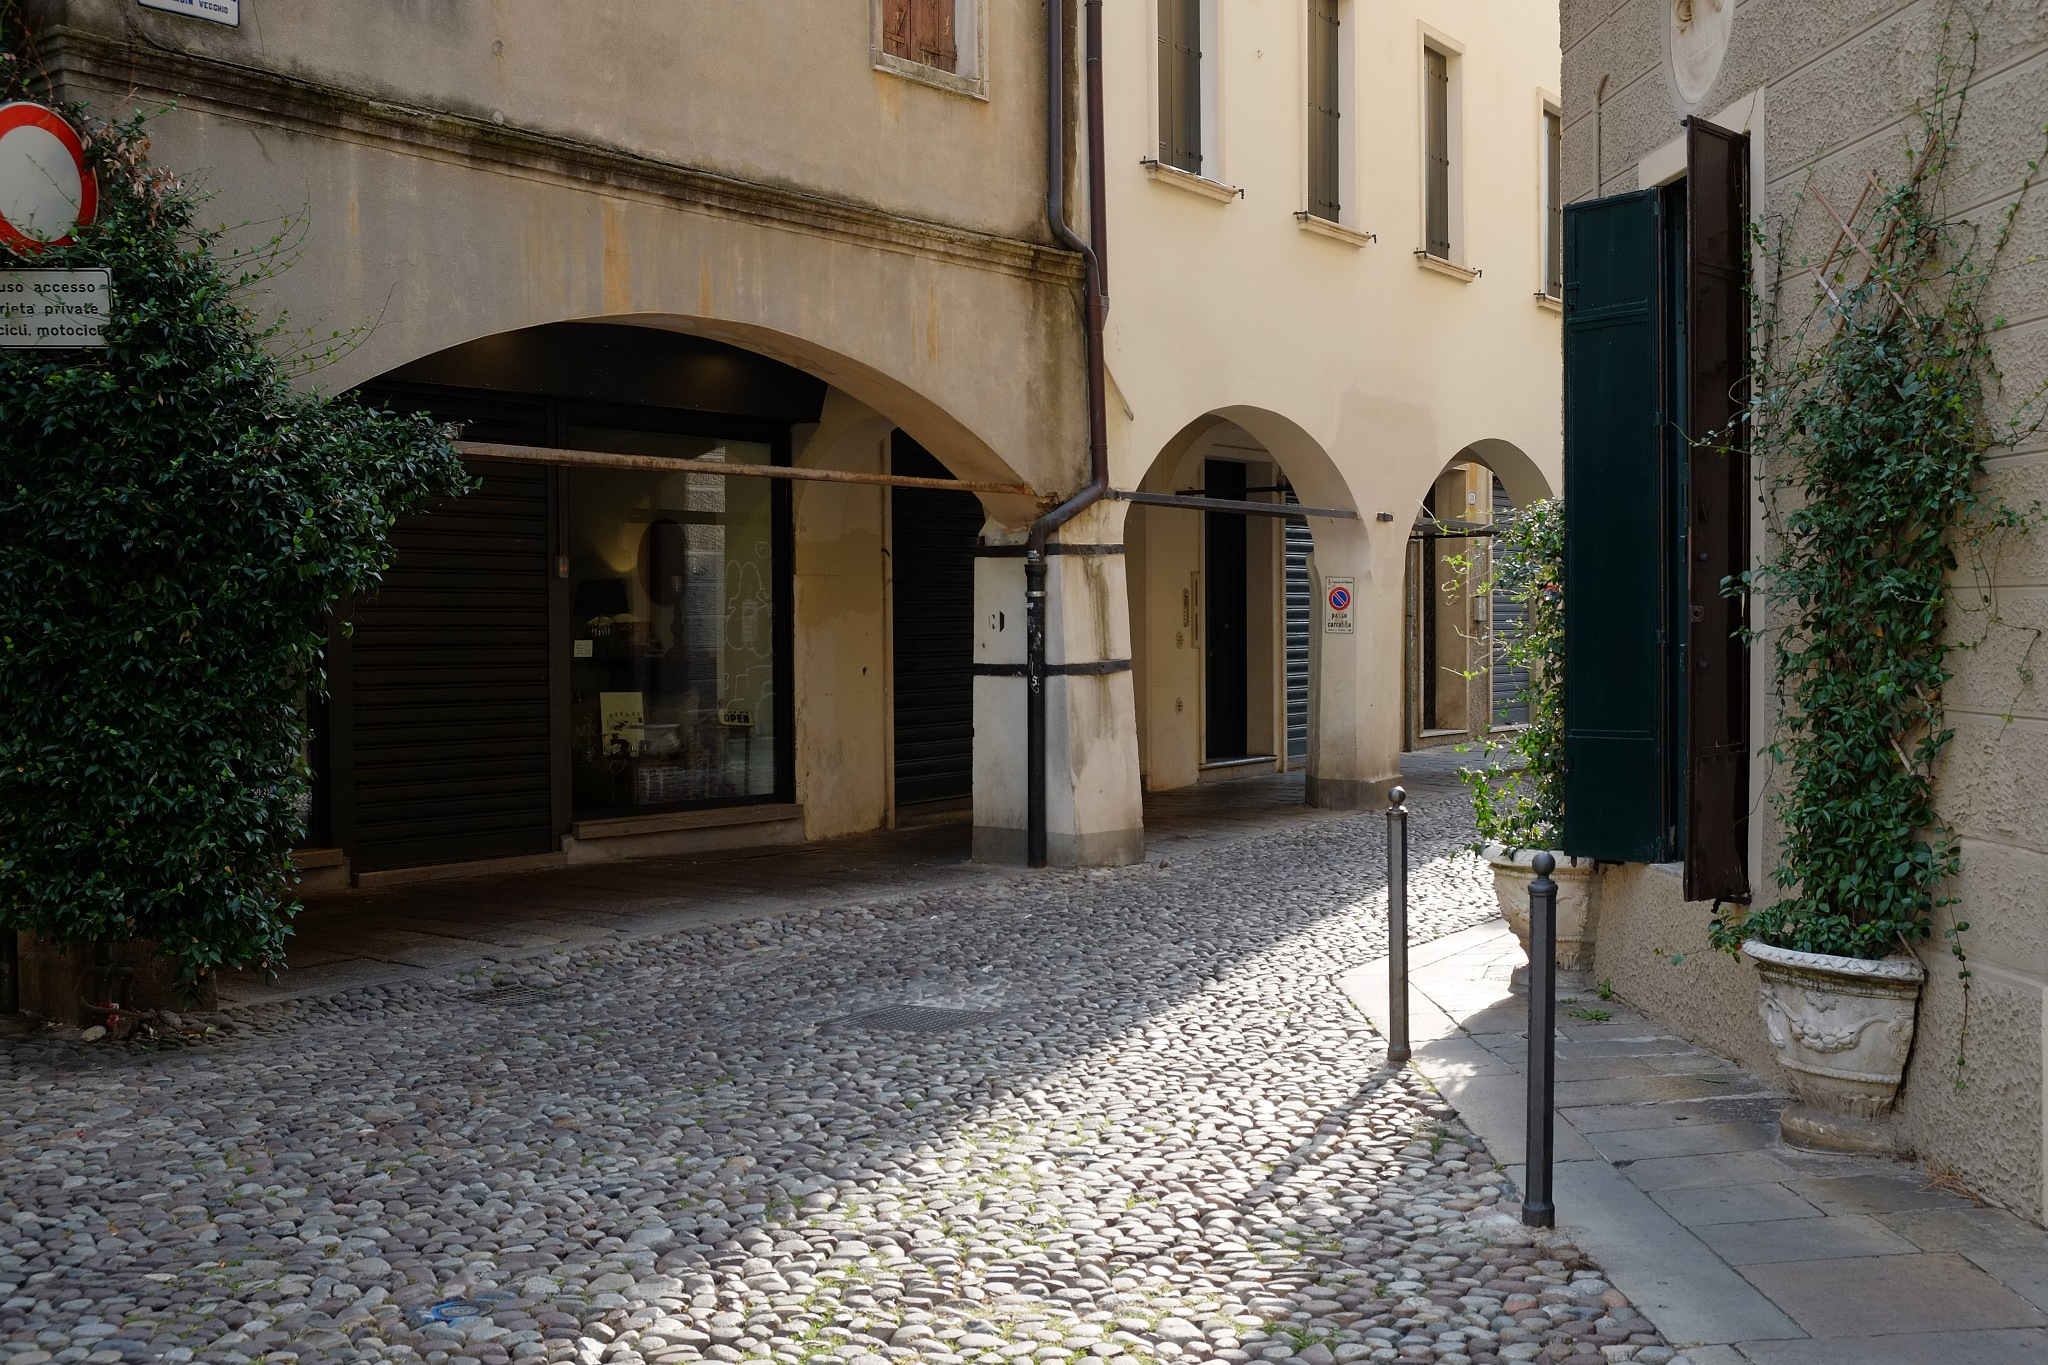 Quiet corner of the old ghetto, Padova by Pete Hussey